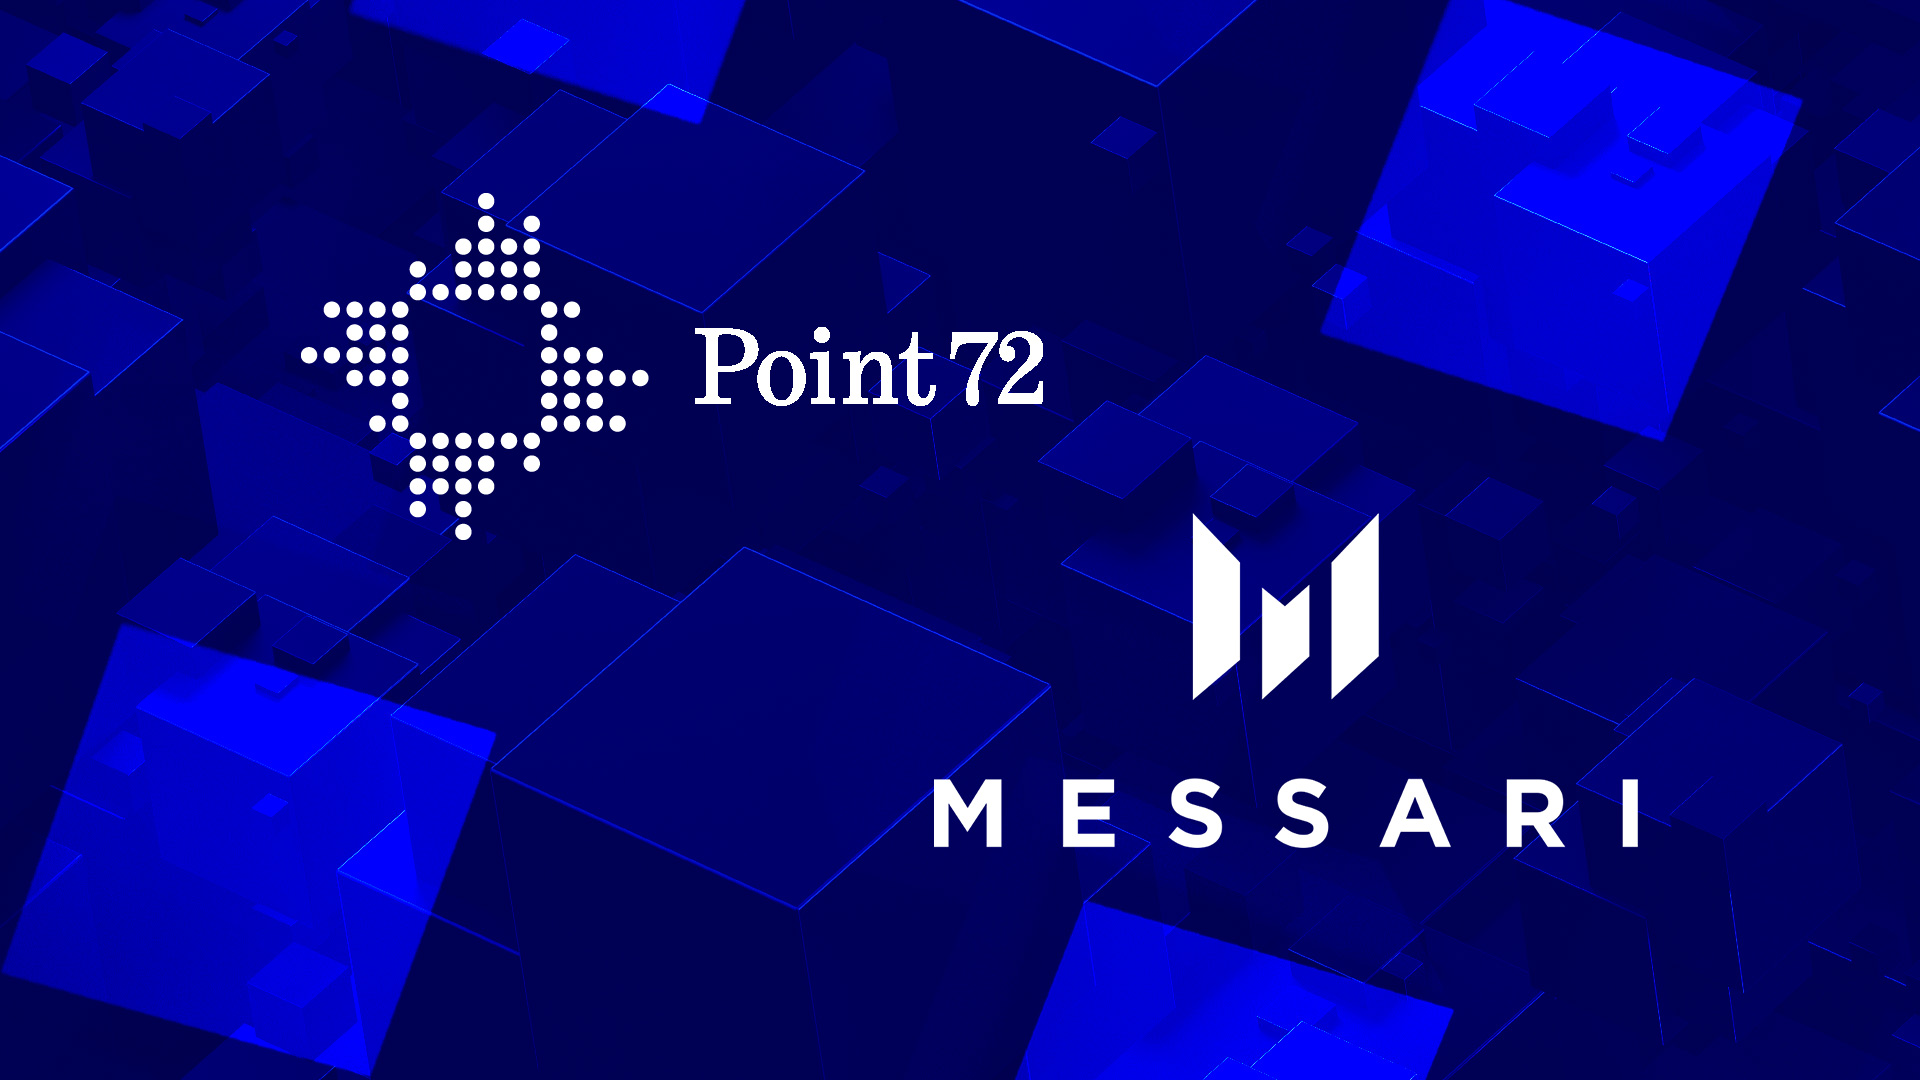 Steve Cohen's Point72 makes first crypto venture investment, leads Messari's $21M raise